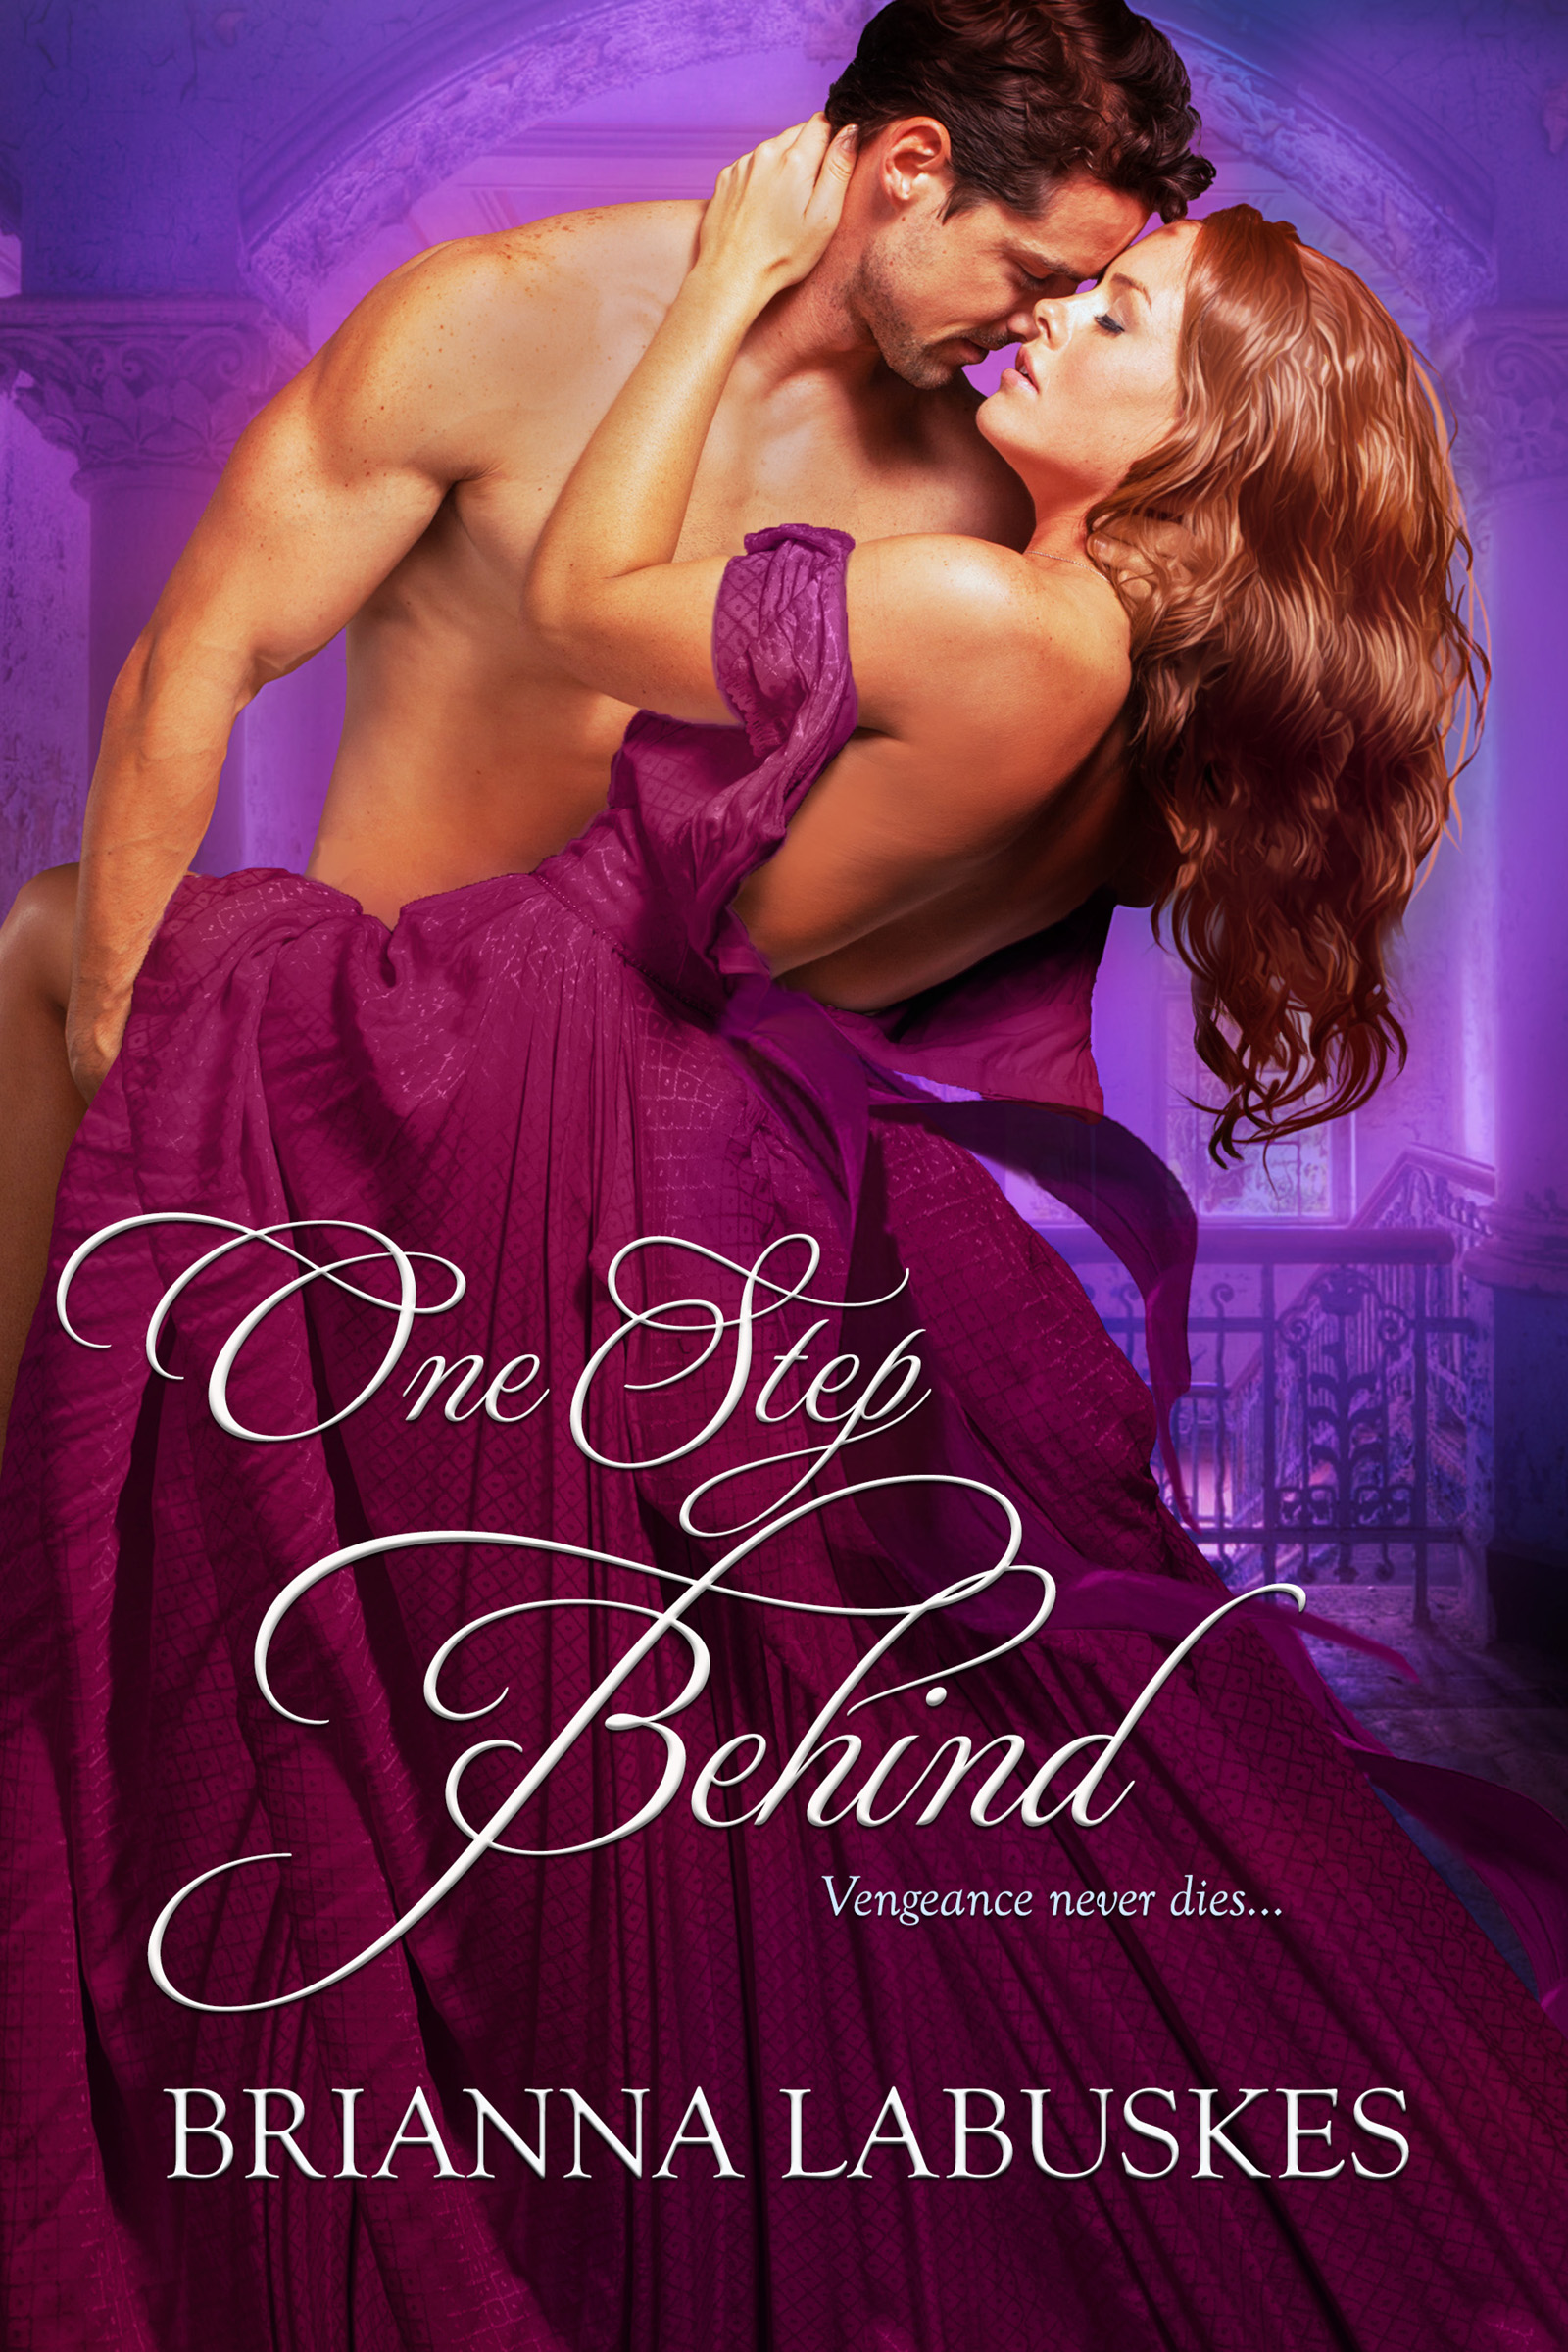 Review – One Step Behind by Brianna Labuskes